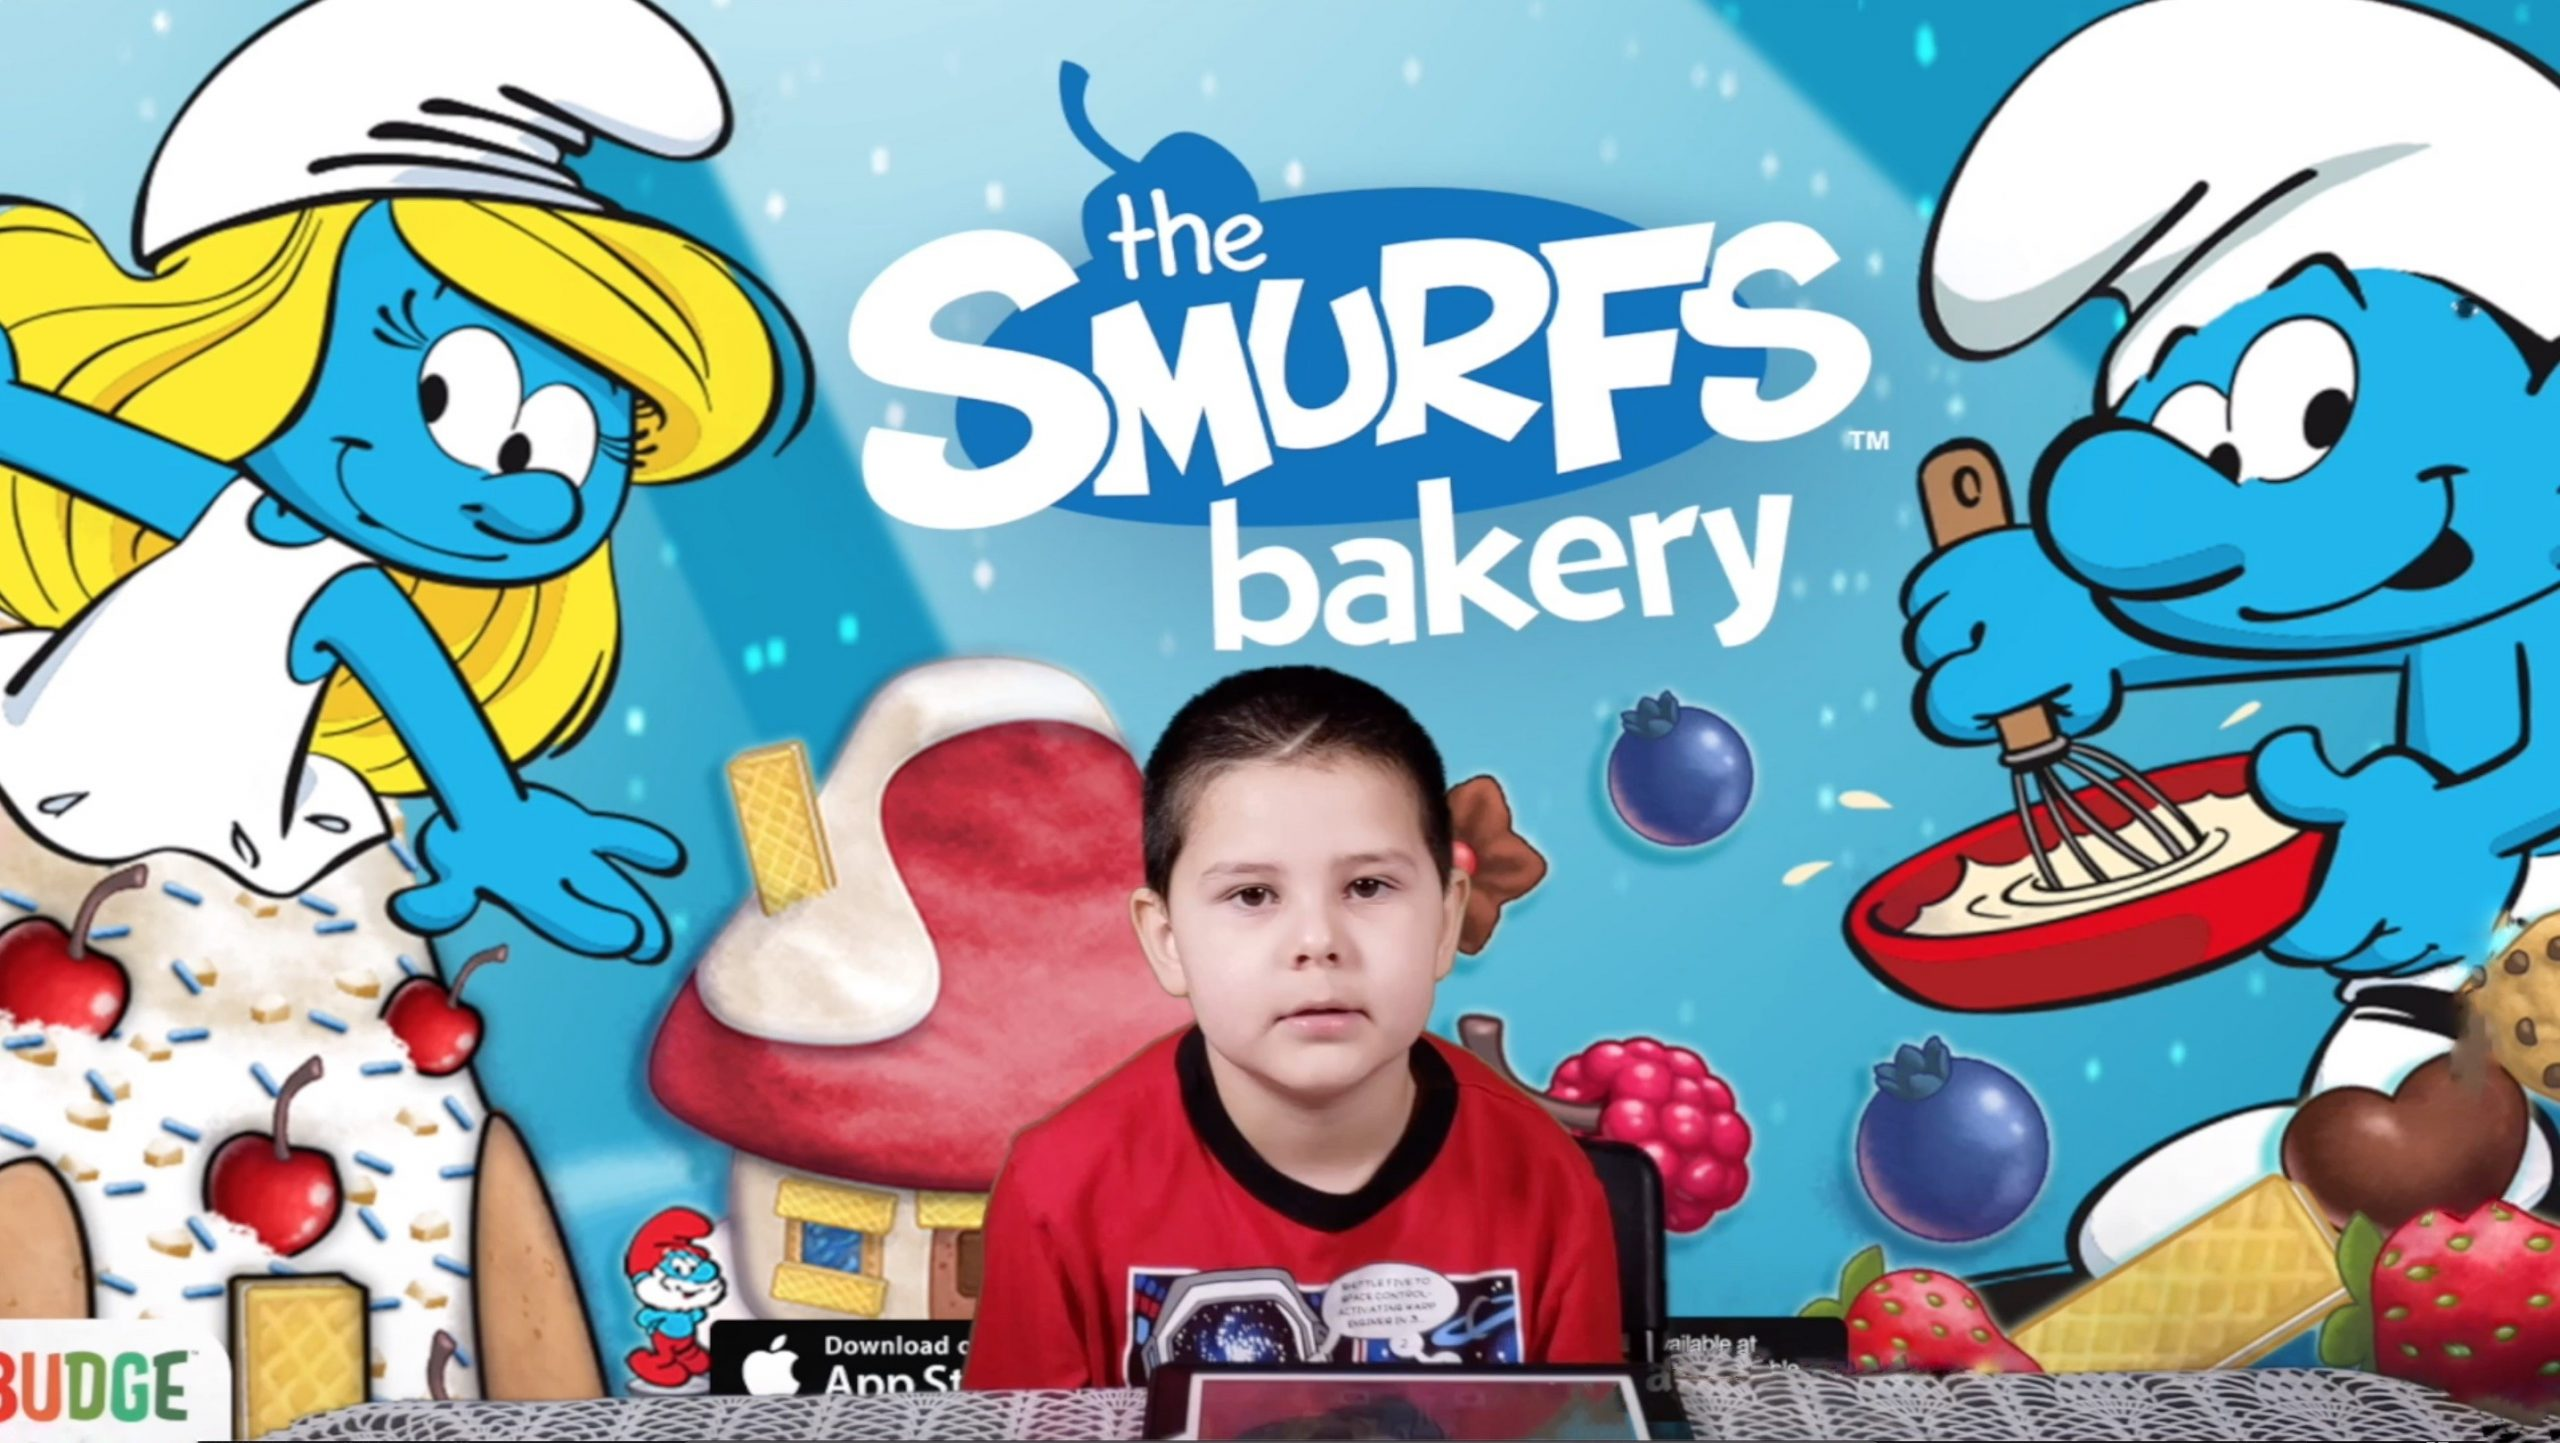 The Smurfs Bakery Dessert Maker